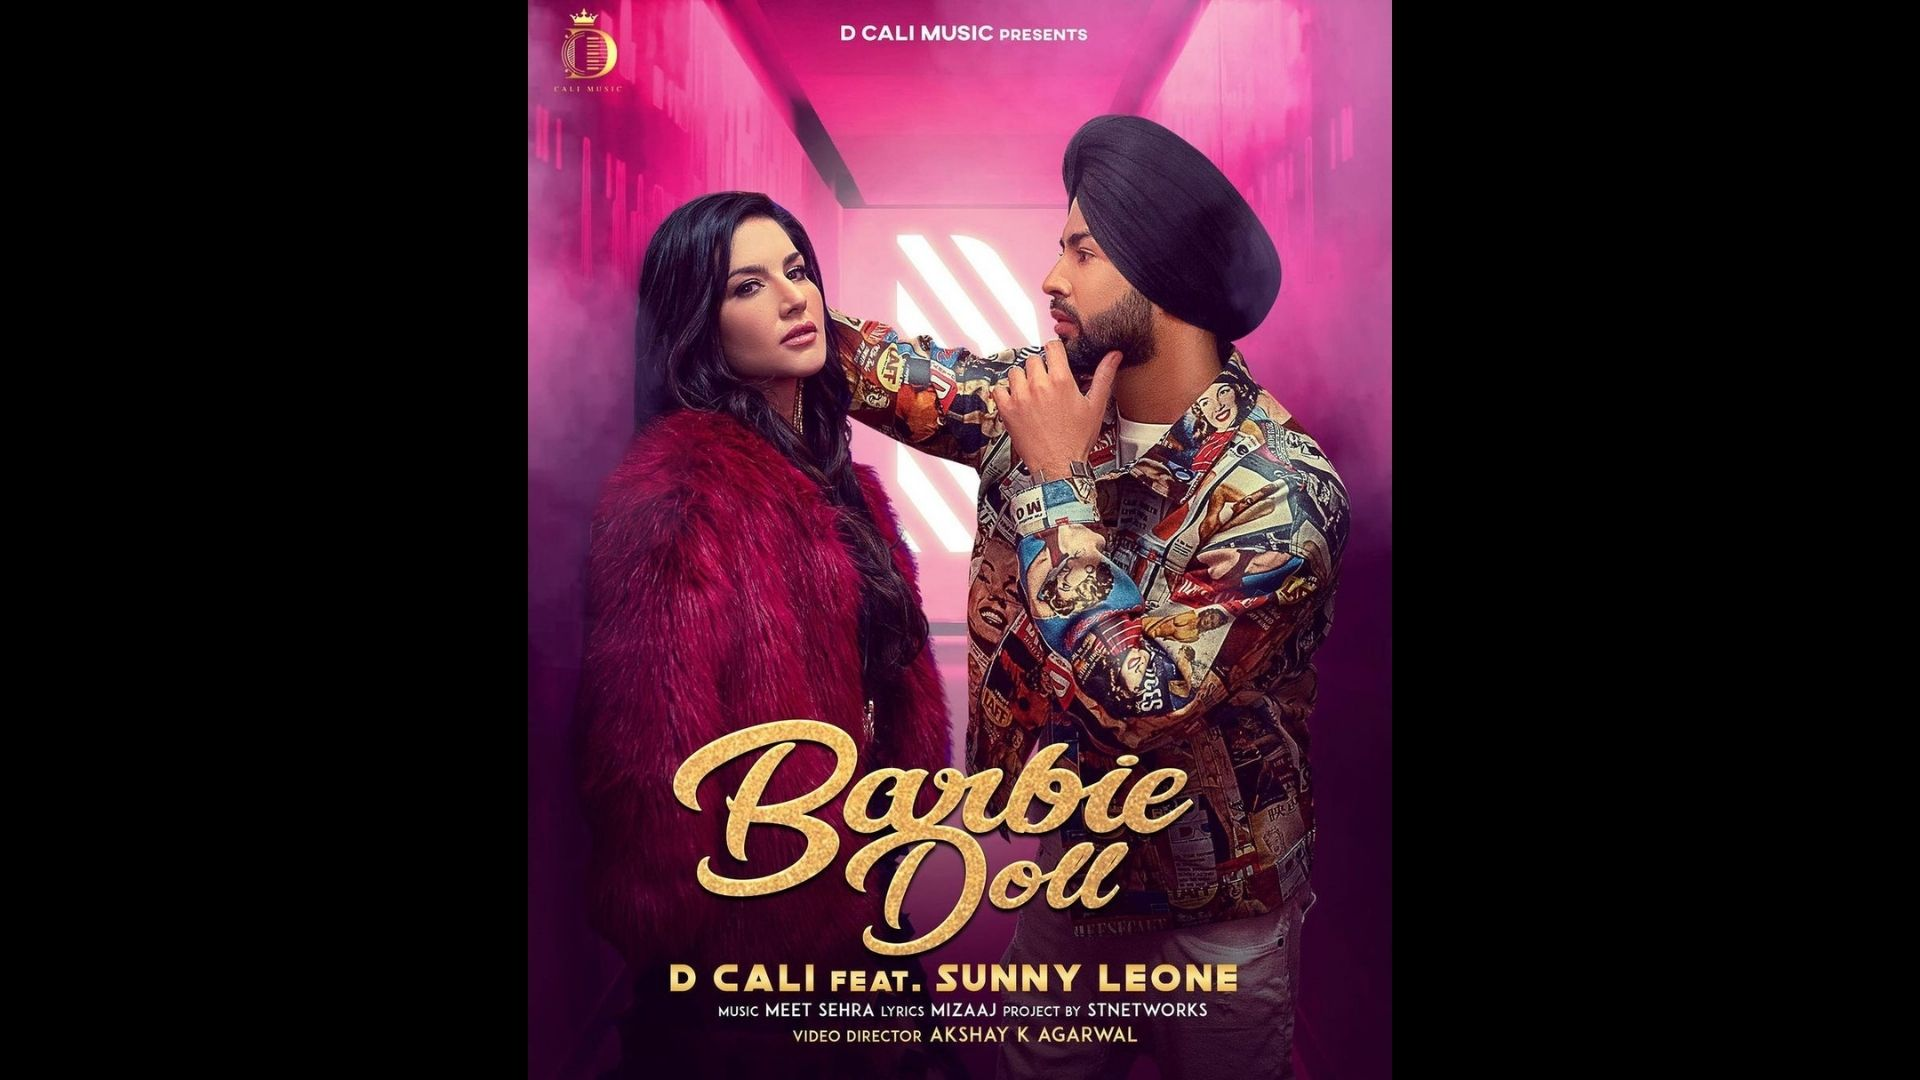 Barbie Doll New Poster: Sunny Leone's New Look Is Spellworking